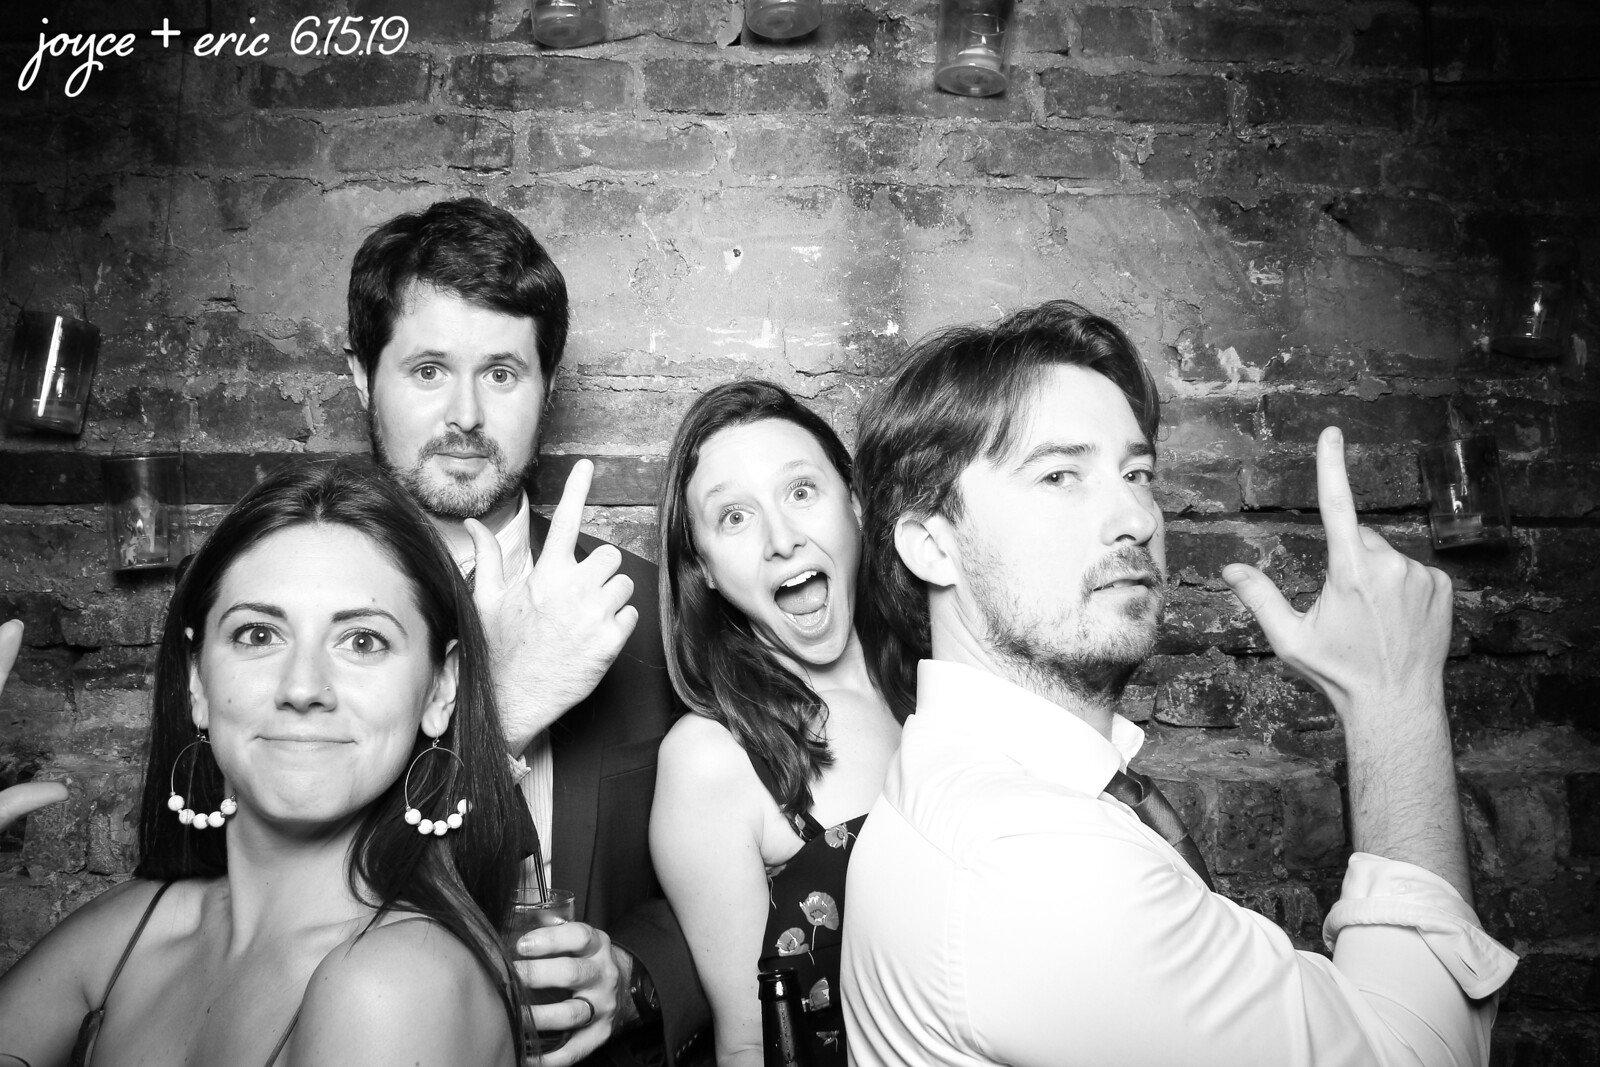 Chicago_Vintage_Wedding_Photobooth_New_Leaf_15.jpg